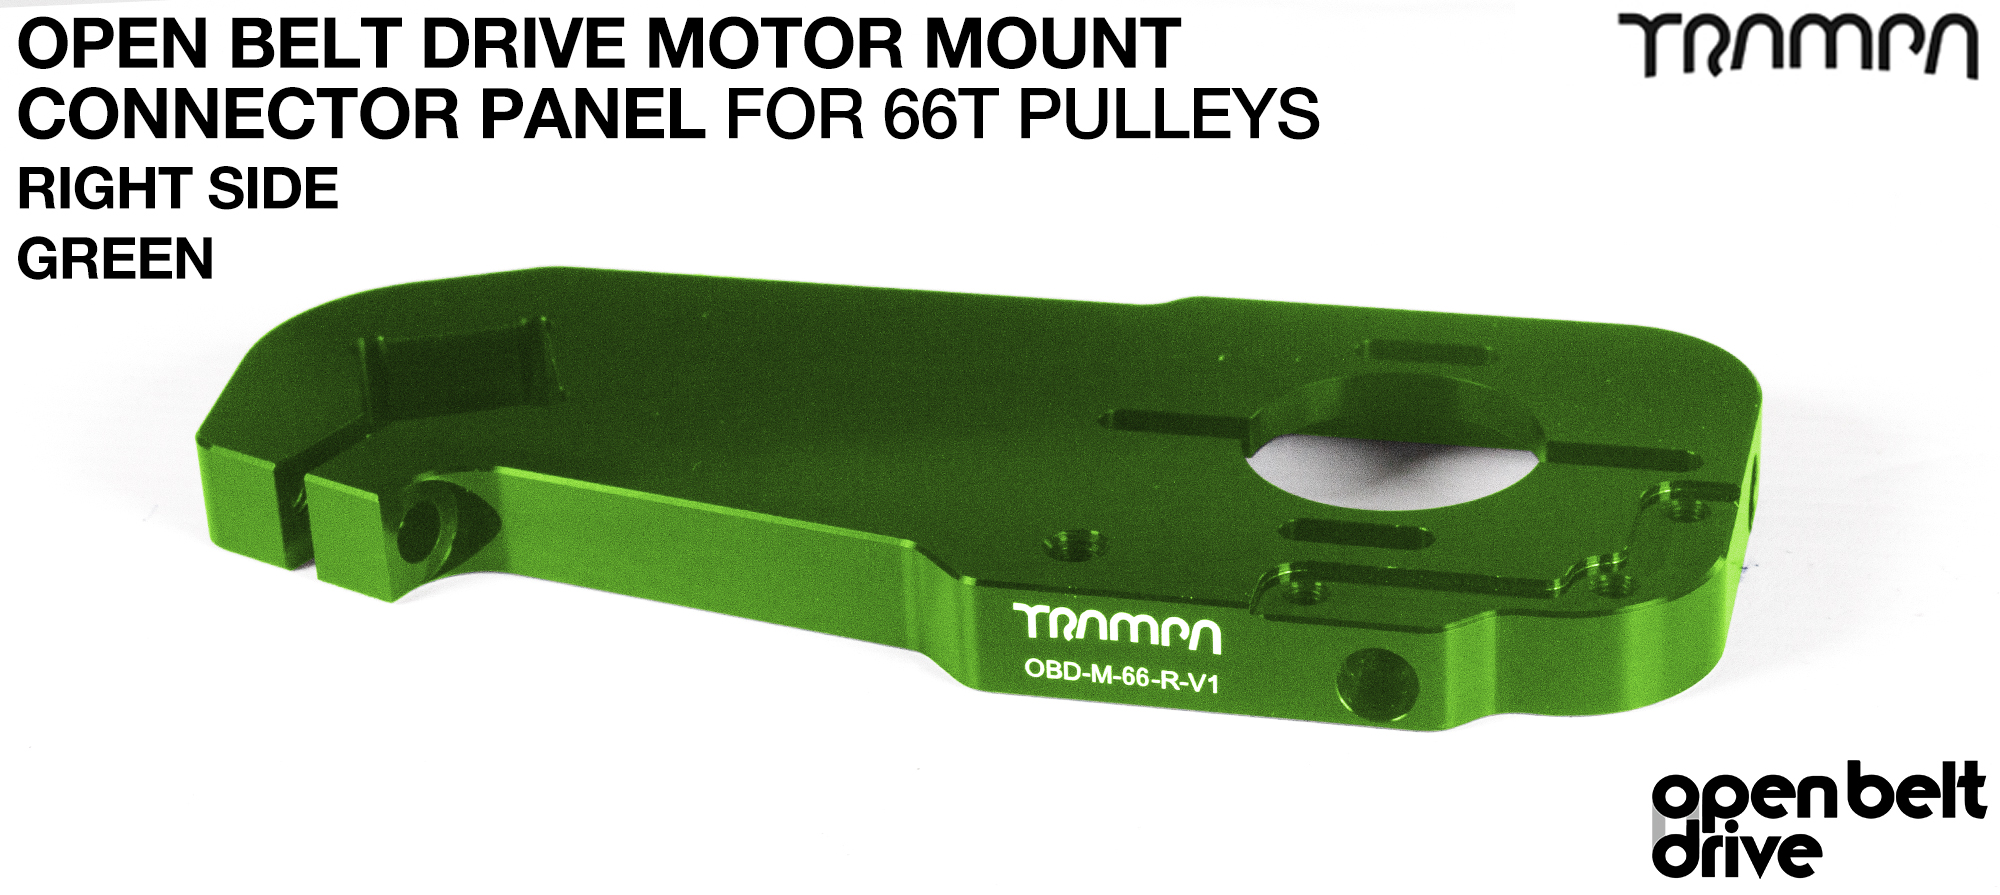 OBD Open Belt Drive Motor Mount Connector Panel for 66 tooth Pulleys - GOOFY - GREEN